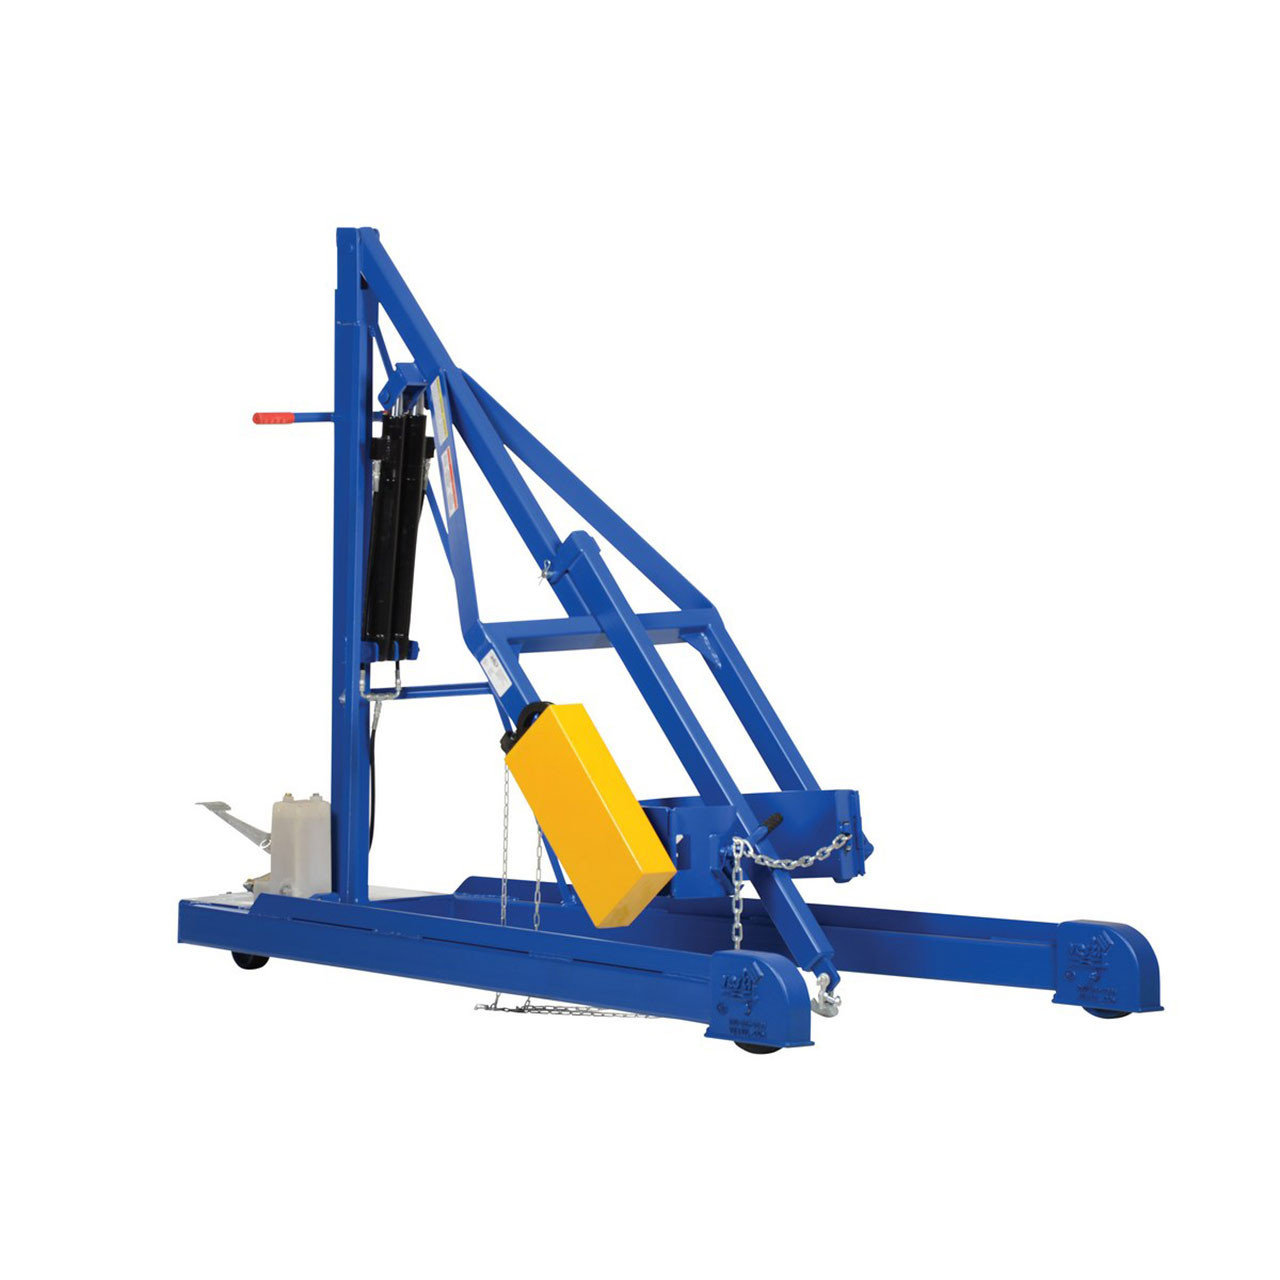 Hydraulic Drum Carrier/Rotator/Boom Side View